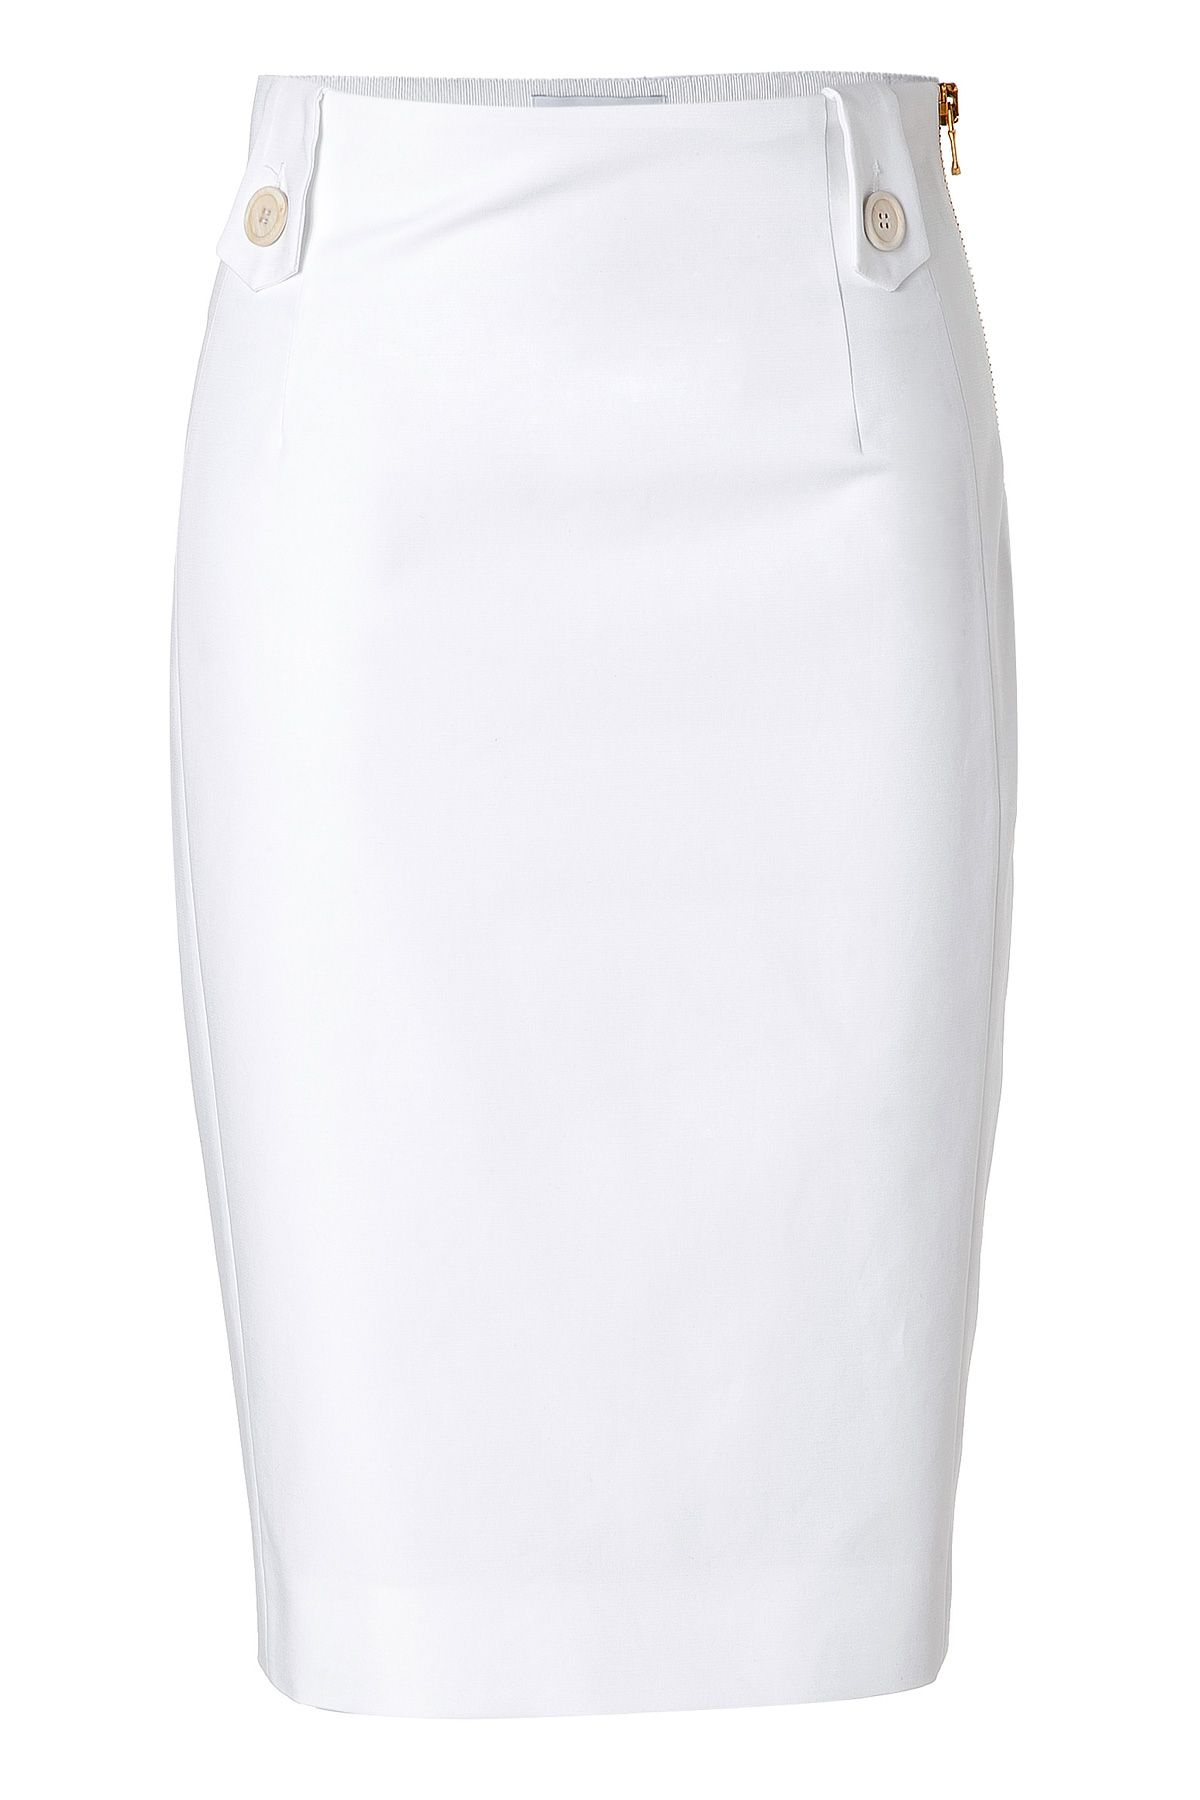 MOSCHINO White Cotton Pencil Skirt Cue the leopard print top to go with this love it! red high heals and I'm set